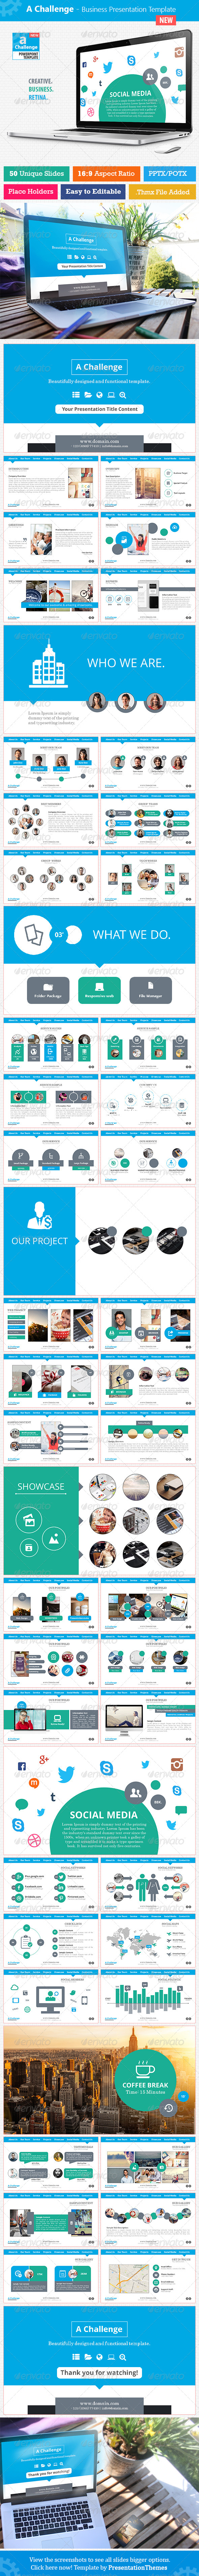 GraphicRiver A Challenge Business Presentation Template 8340669